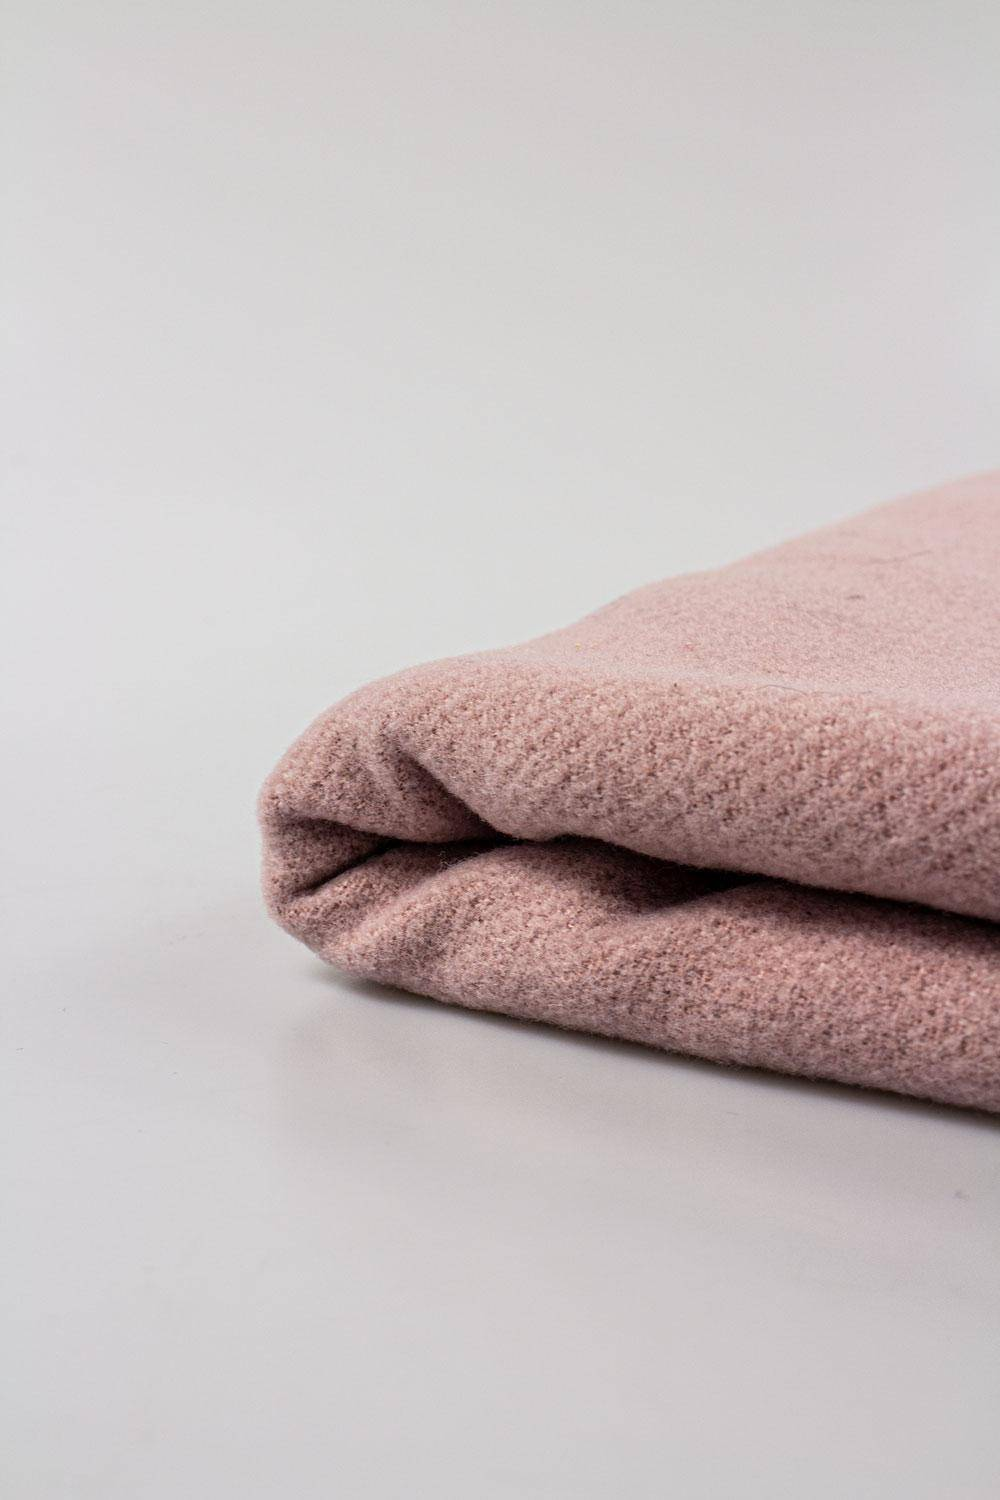 Fabric - Duffle Fleece  - Pink - 150 cm - 420 g/m2 STOCK